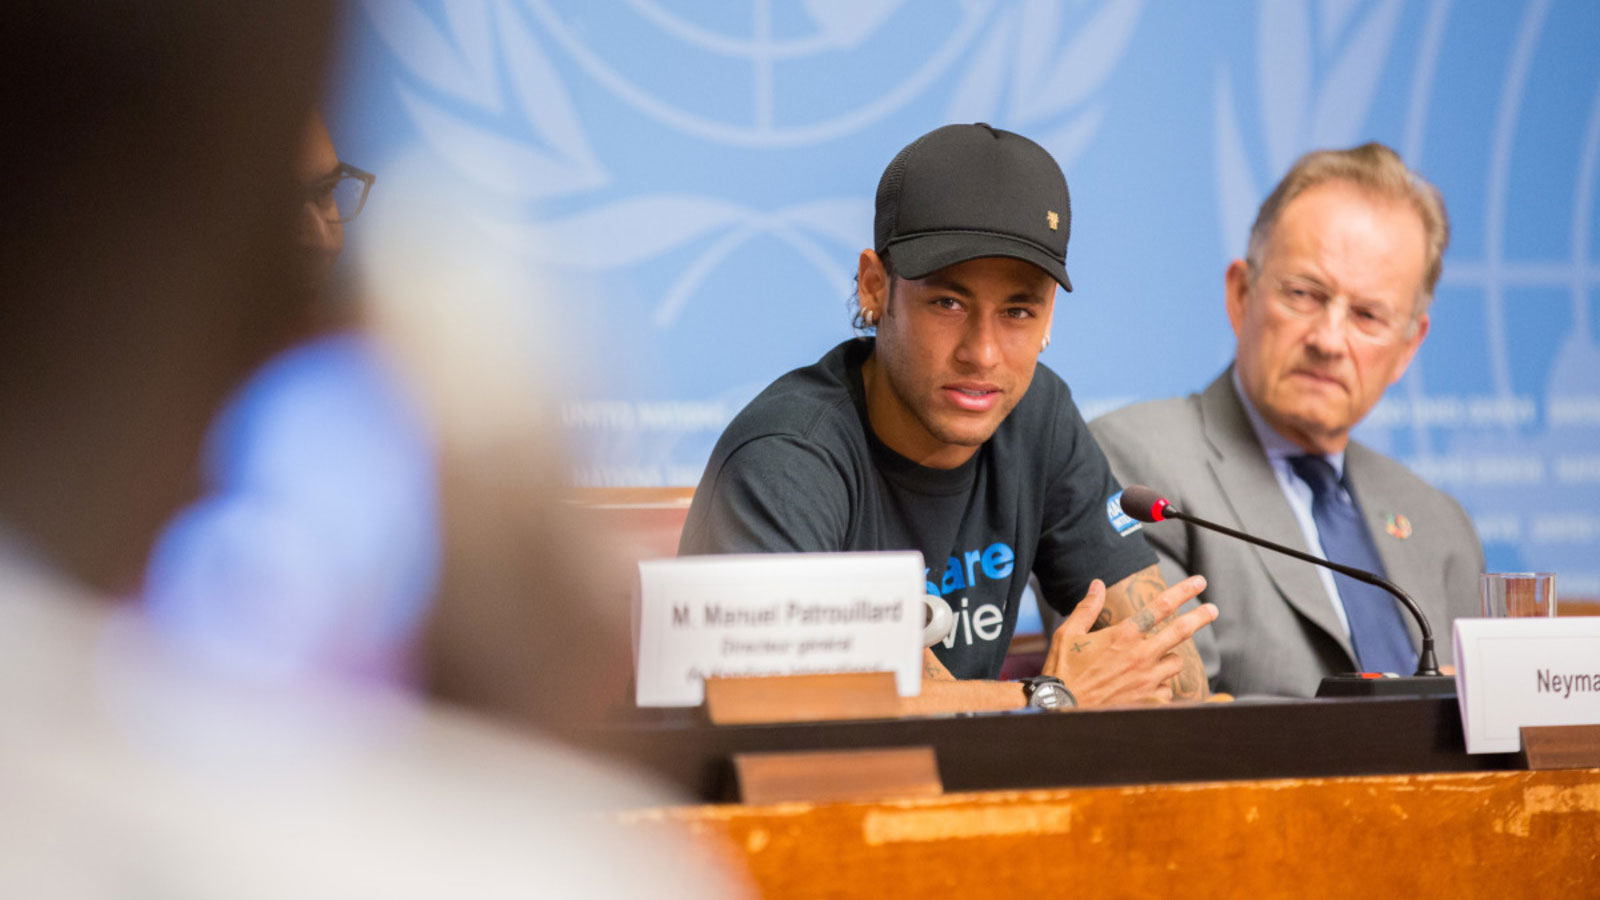 Neymar Jr. becomes HI global ambassador